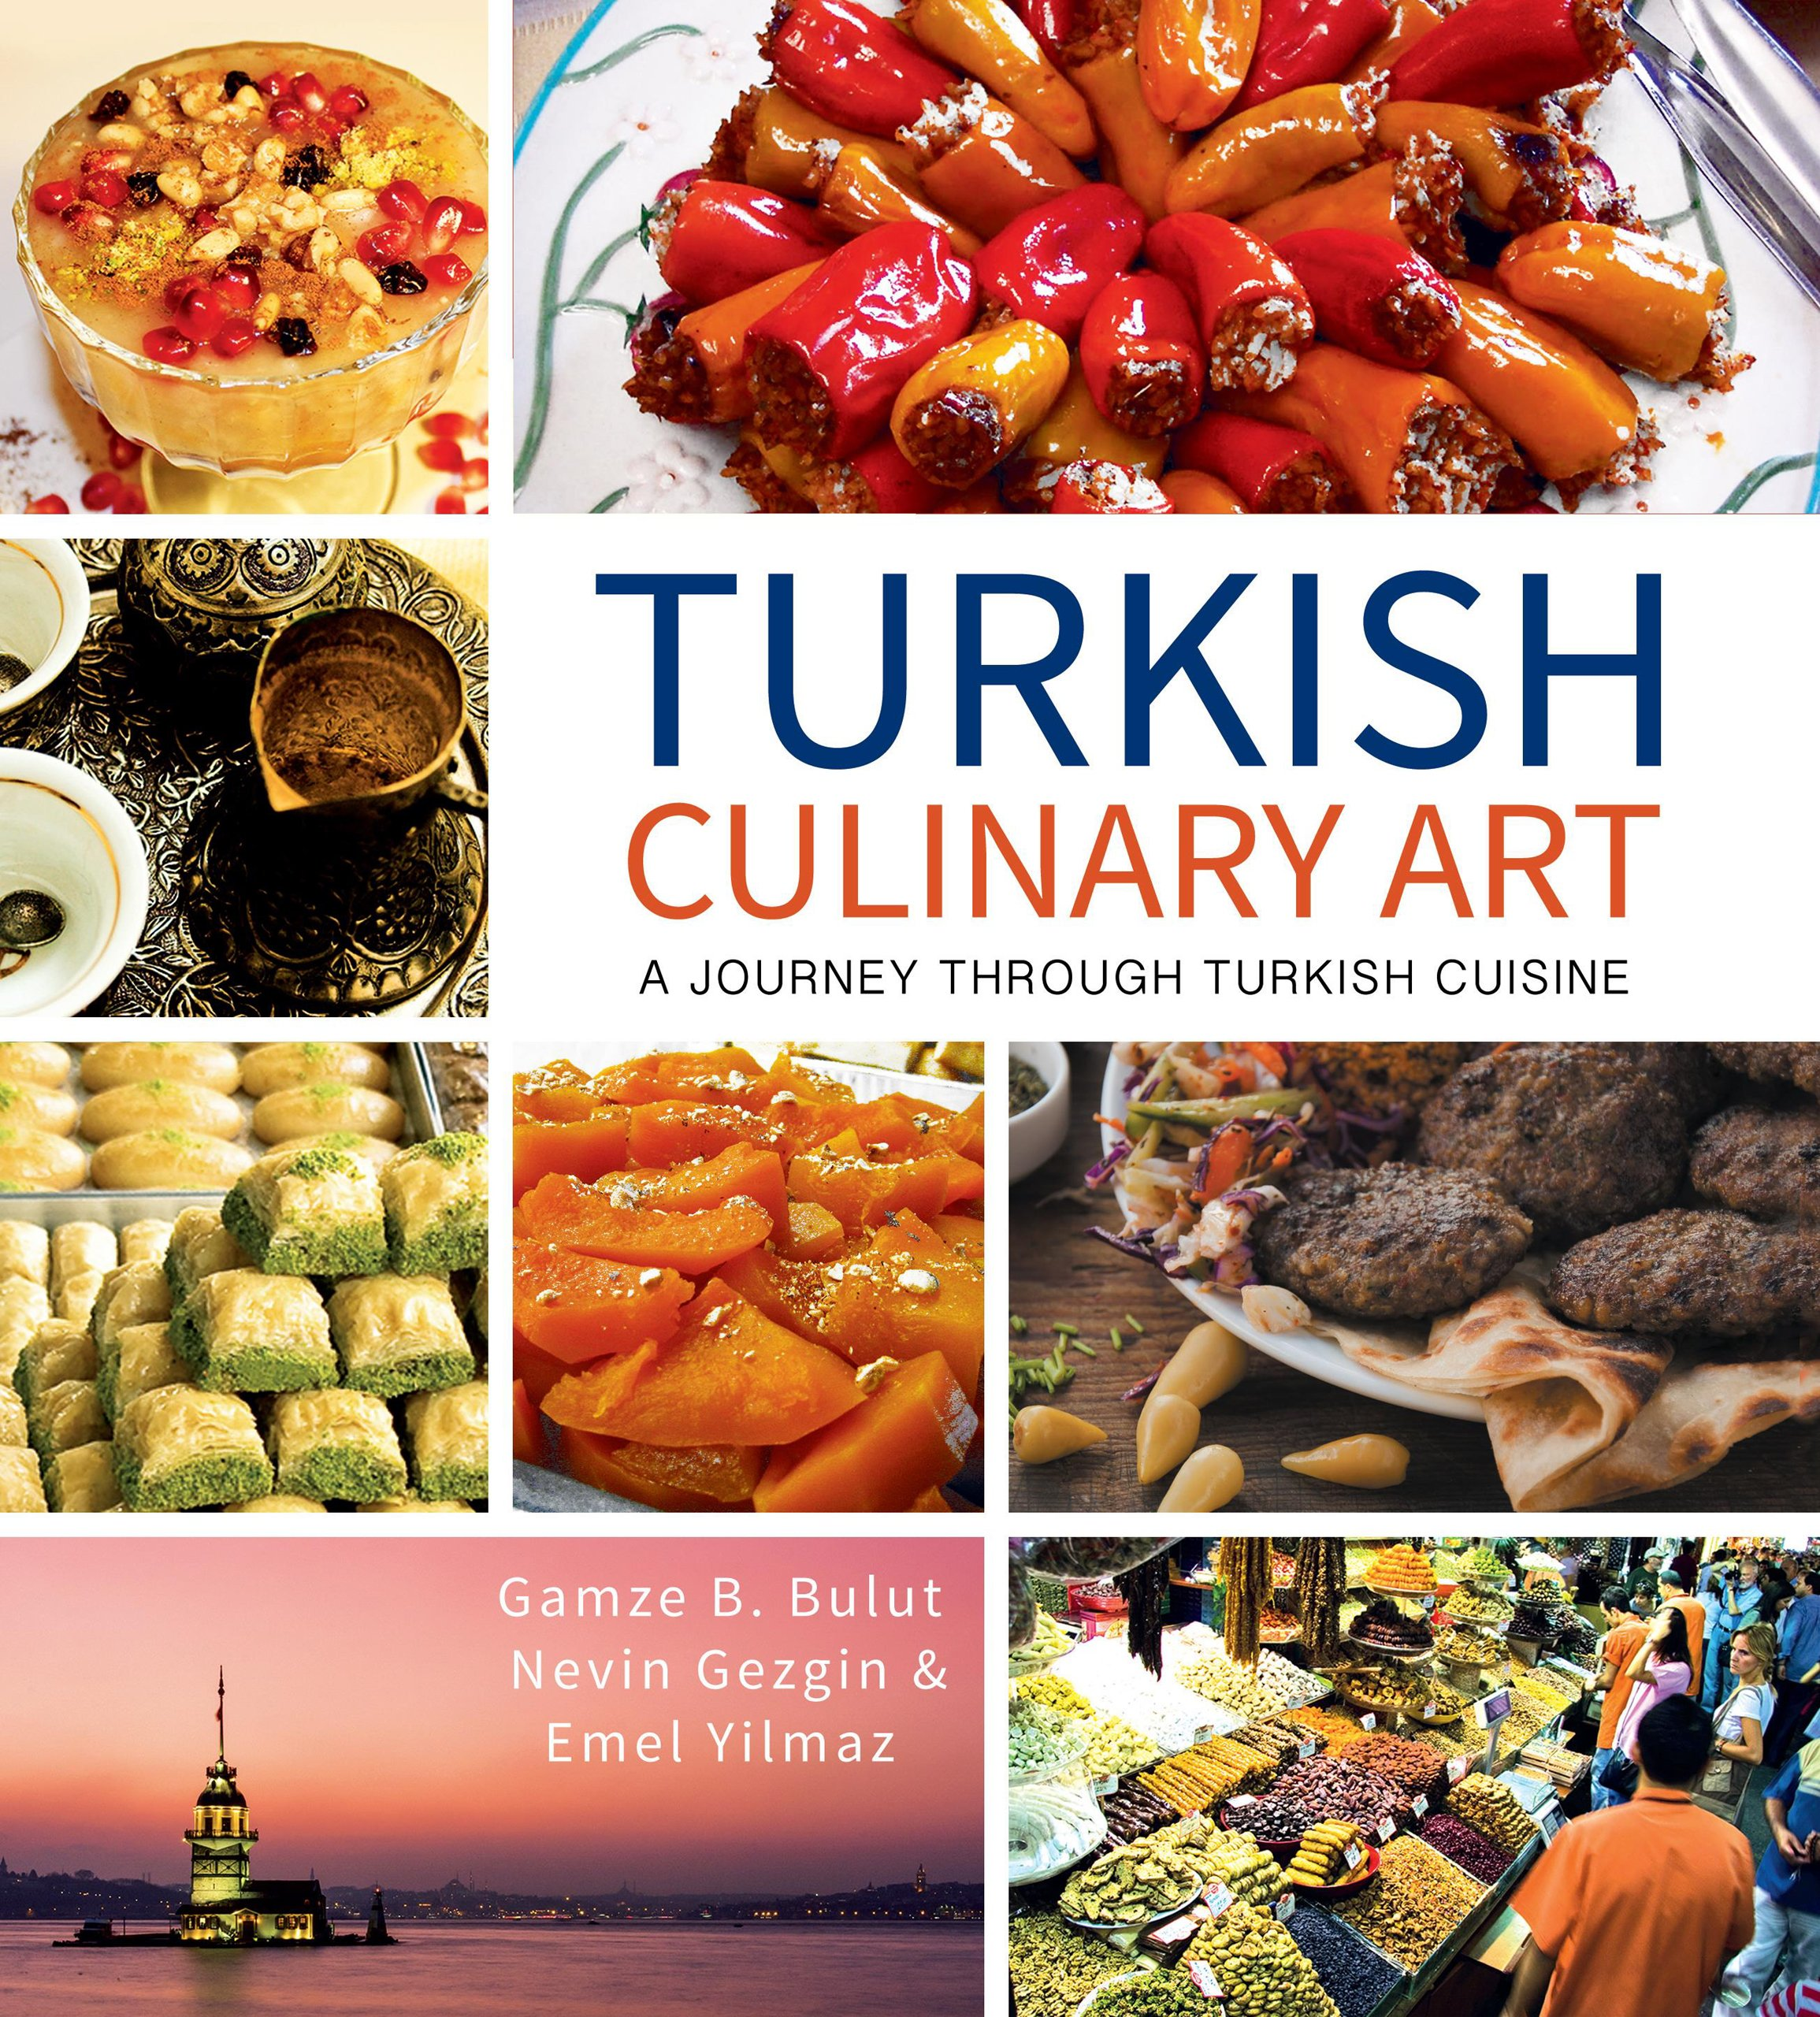 Turkish culinary art a journey through turkish cuisine gamze b turkish culinary art a journey through turkish cuisine gamze b bulut nevin gezgin emel yilmaz 9781935295556 amazon books forumfinder